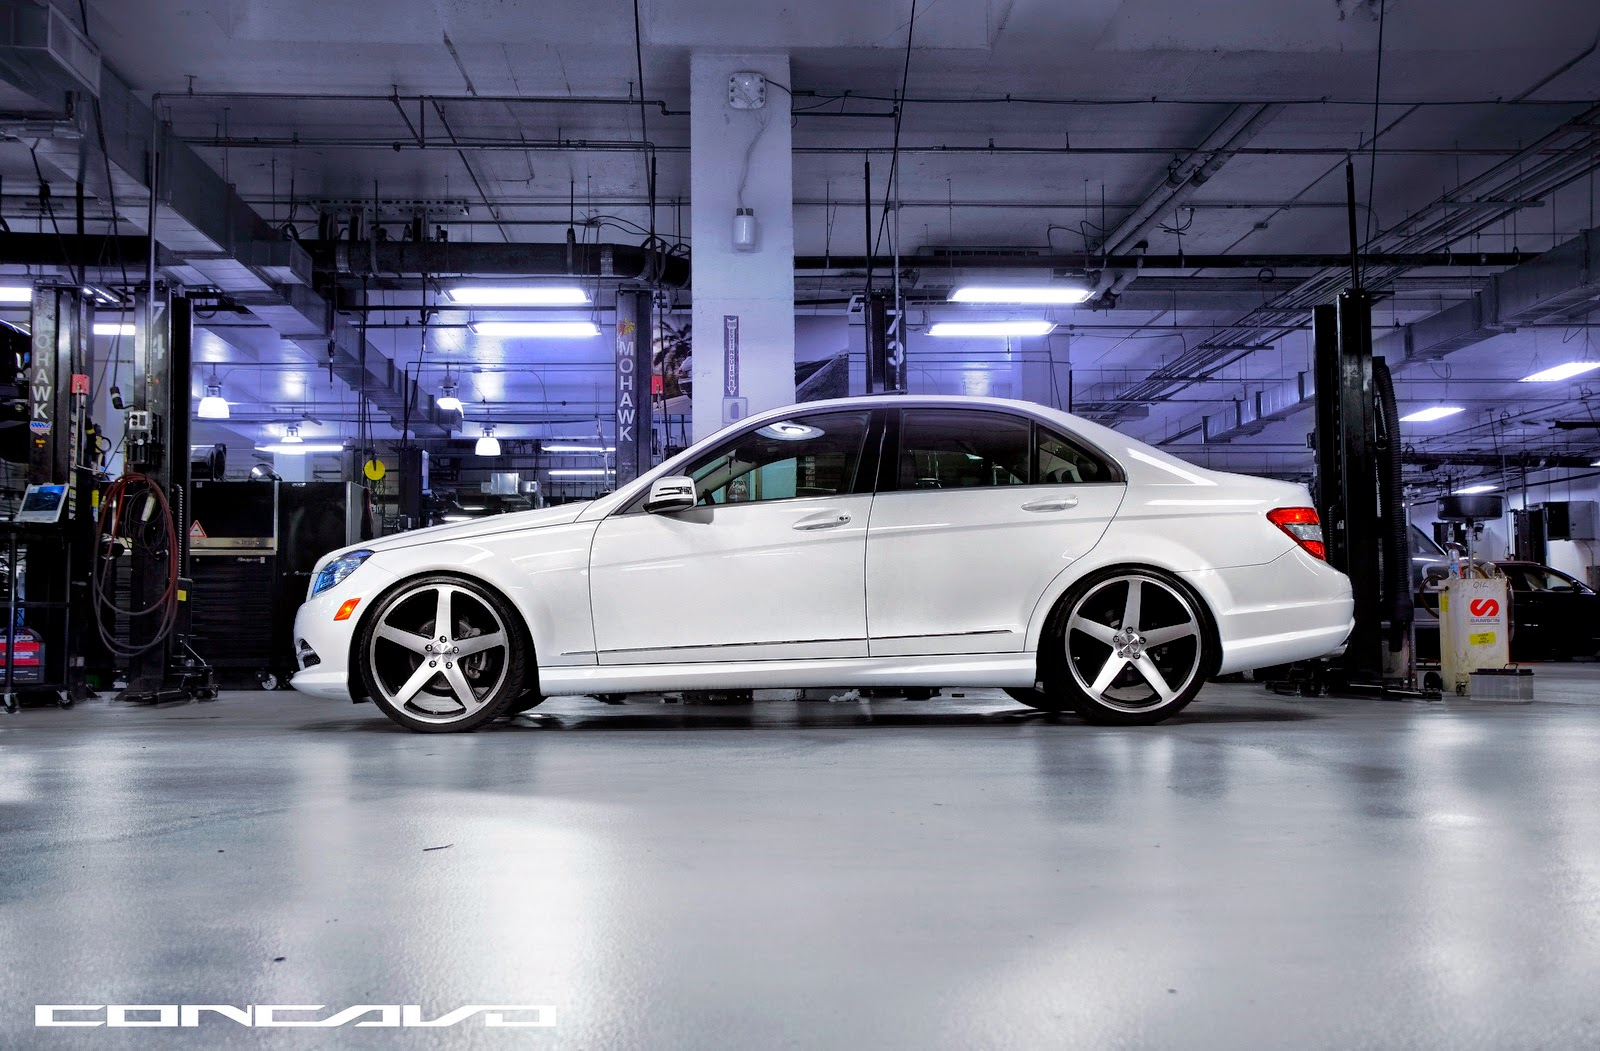 Mercedes Benz W204 C300 On 20 Quot Cw 5 Concavo Wheels